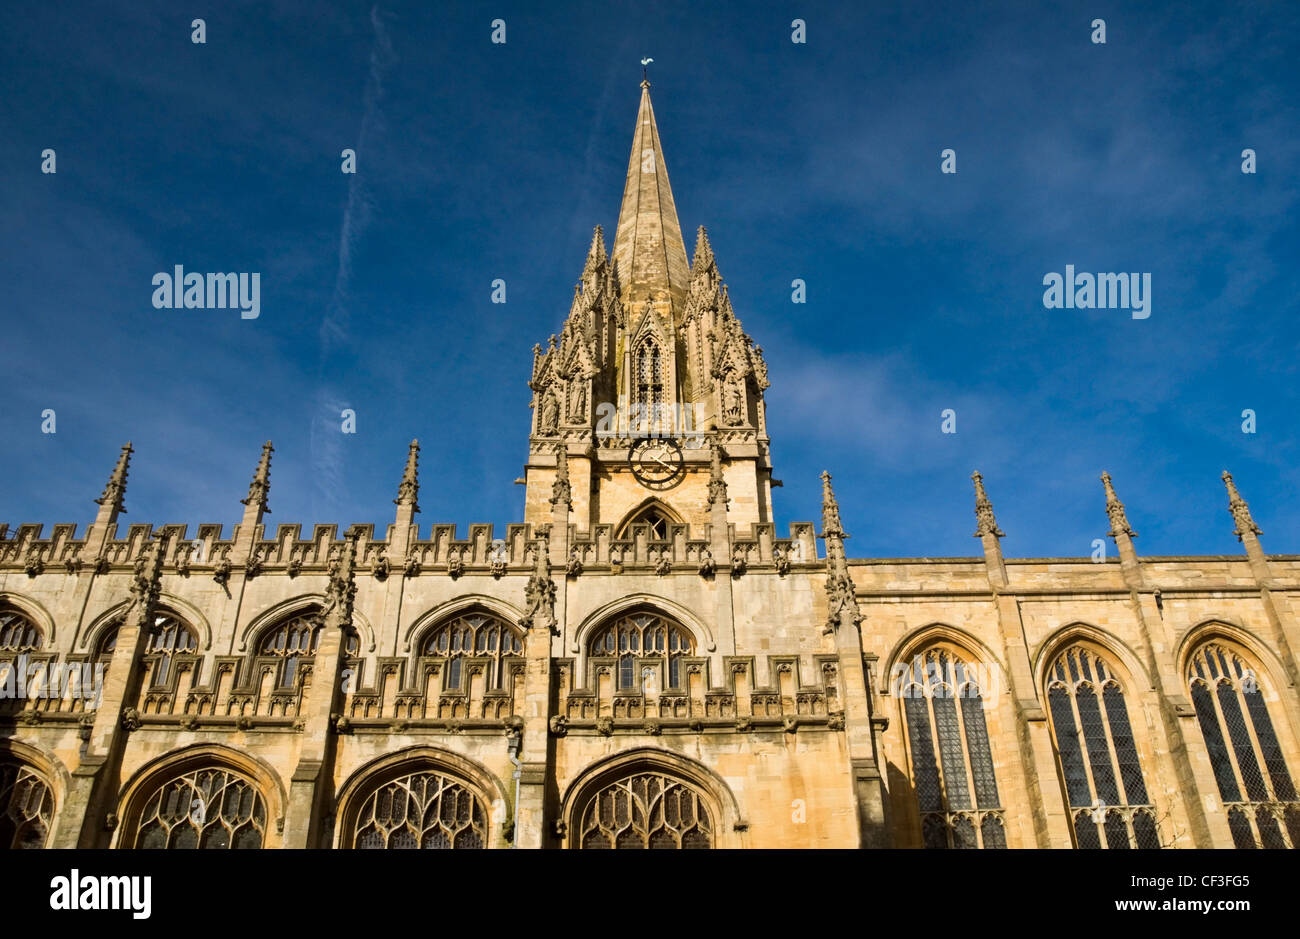 View looking up at the Church of St Mary the Virgin in Oxford. - Stock Image